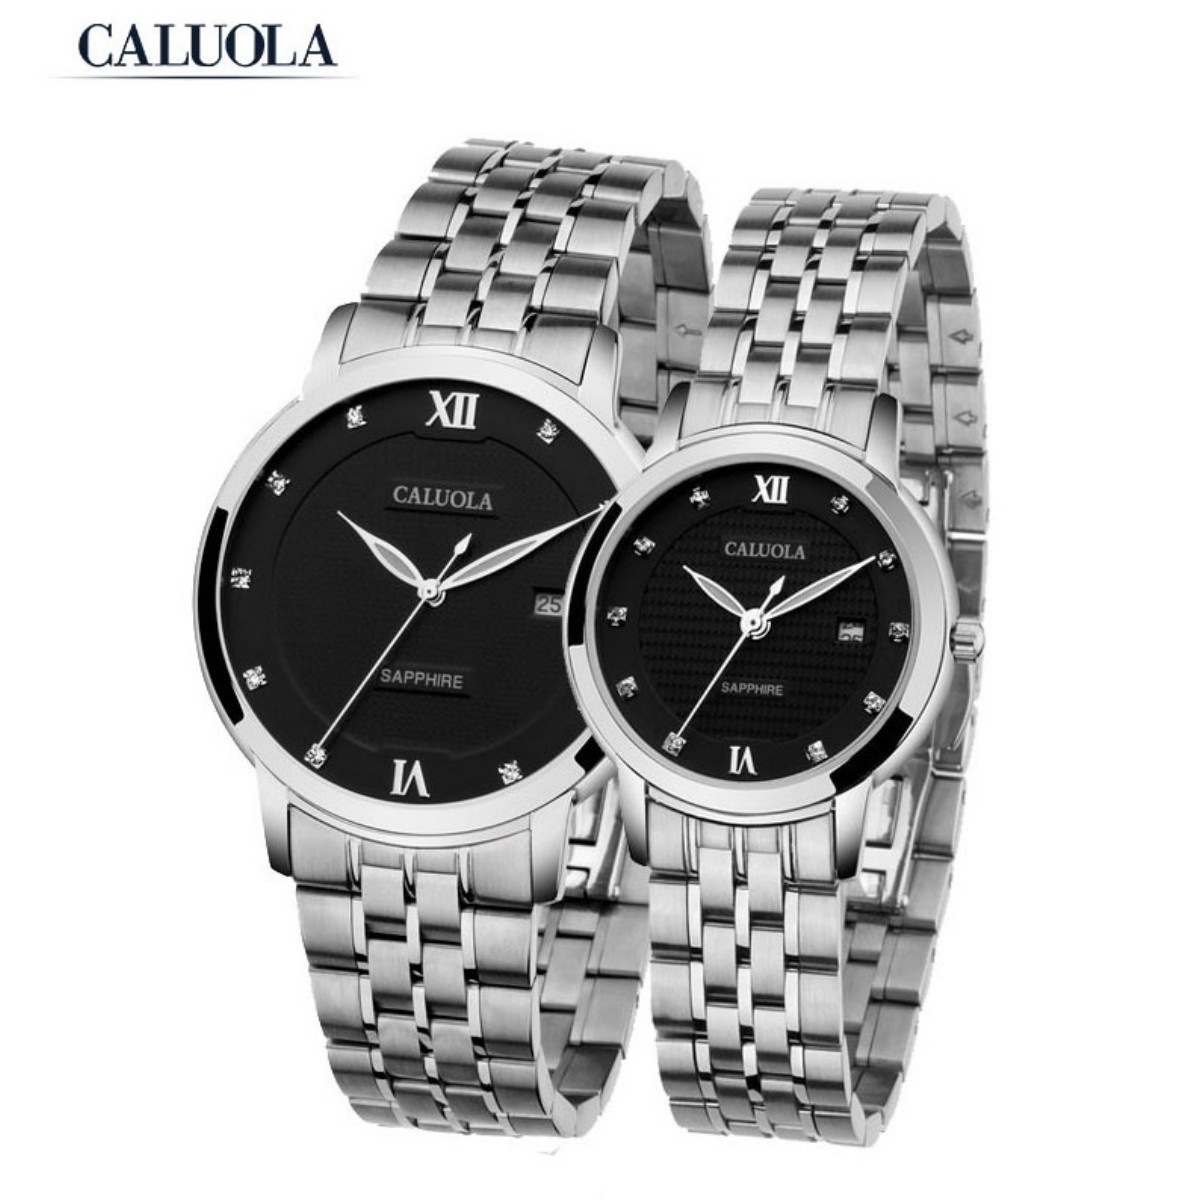 Caluola Auto Couple Watch 39/29mm Steel CA1050